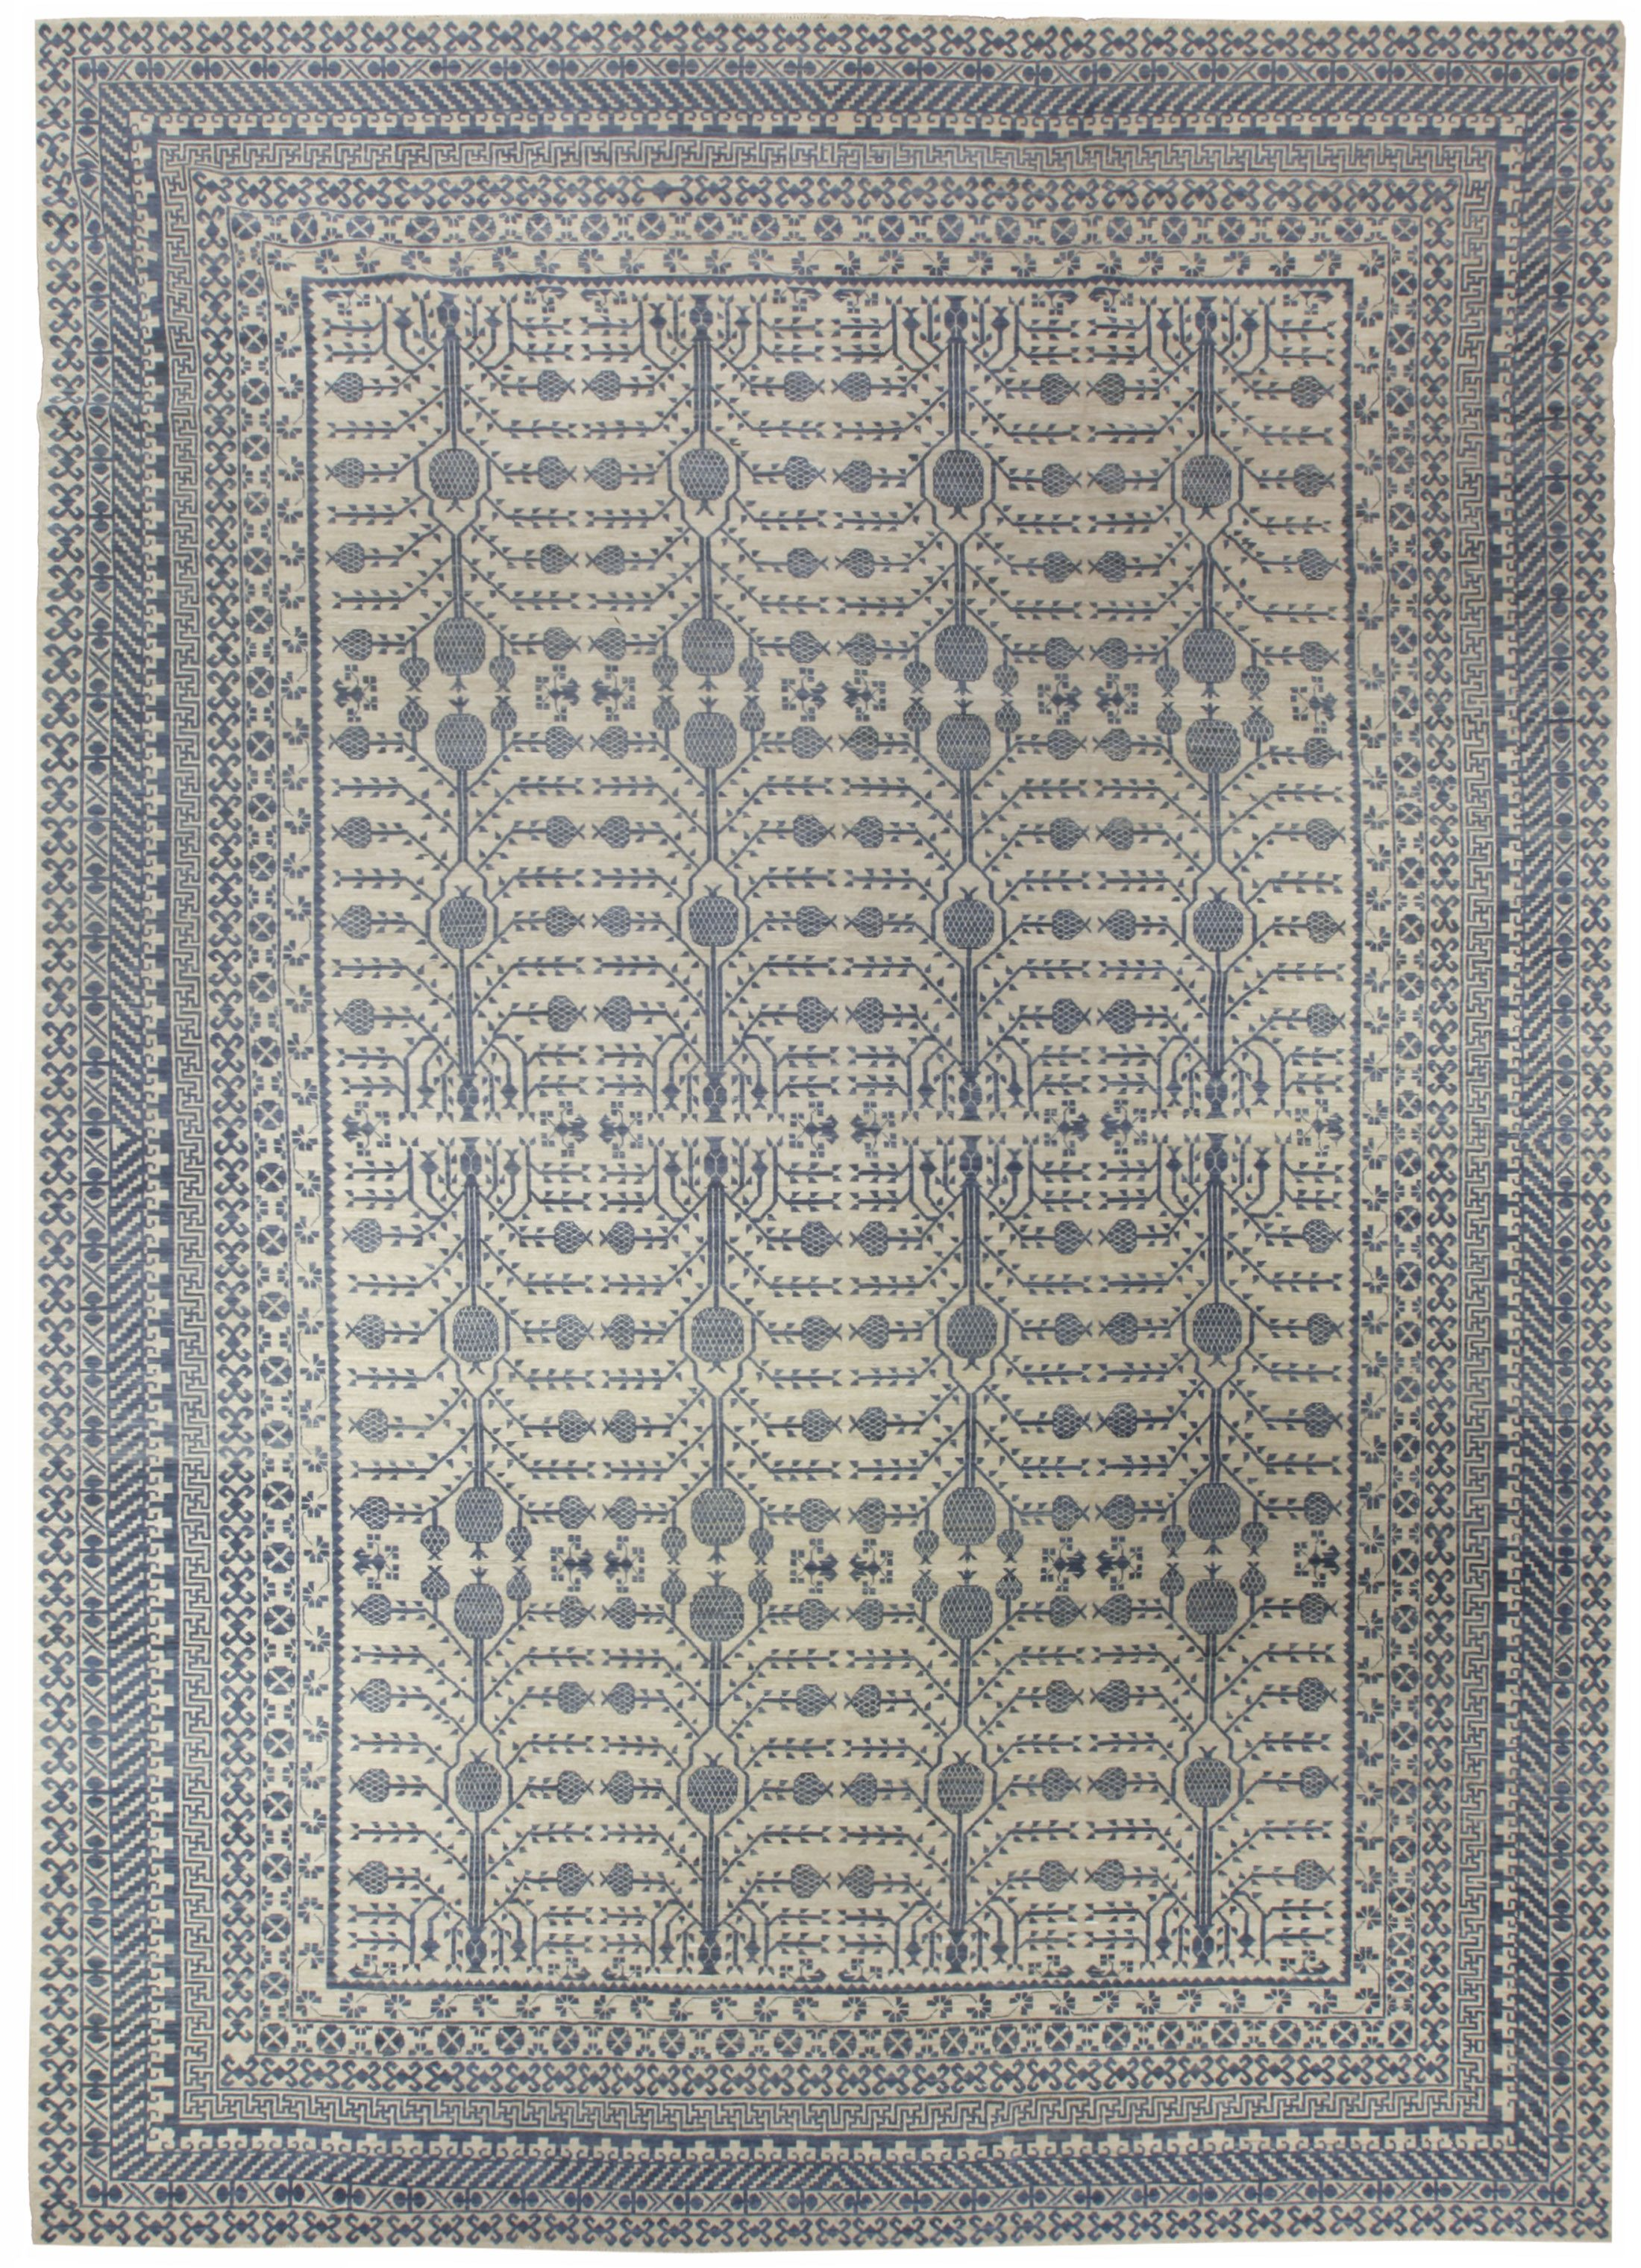 A Large Contemporary Wool Samarkand Khotan Carpet Hand Woven By Traditional Methods Elegant Design And Color Scheme Custo Rugs Modern Area Rugs Square Rugs